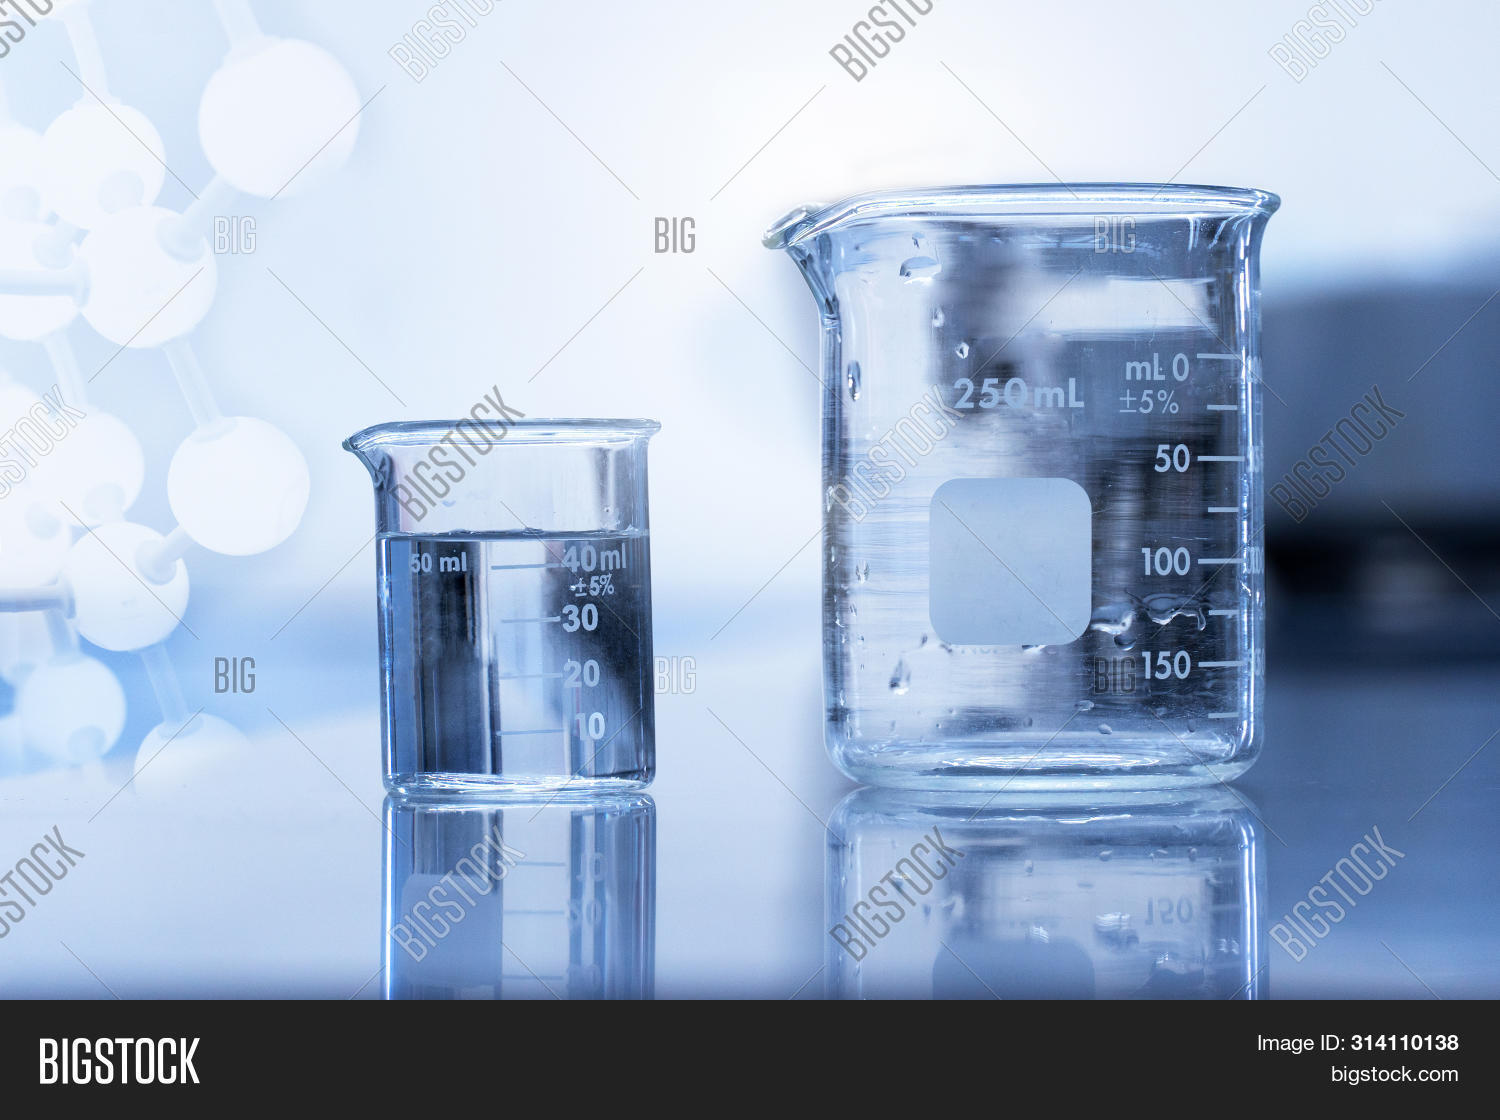 analysis,background,beaker,biochemistry,biotechnology,blue,chemical,chemistry,development,discovery,education,experiment,experimental,flask,glass,glassware,industry,innovation,instrument,investigation,lab,laboratory,liquid,medical,medicine,molecular,reflection,research,school,science,scientific,structure,study,technology,test,transparent,two,water,white